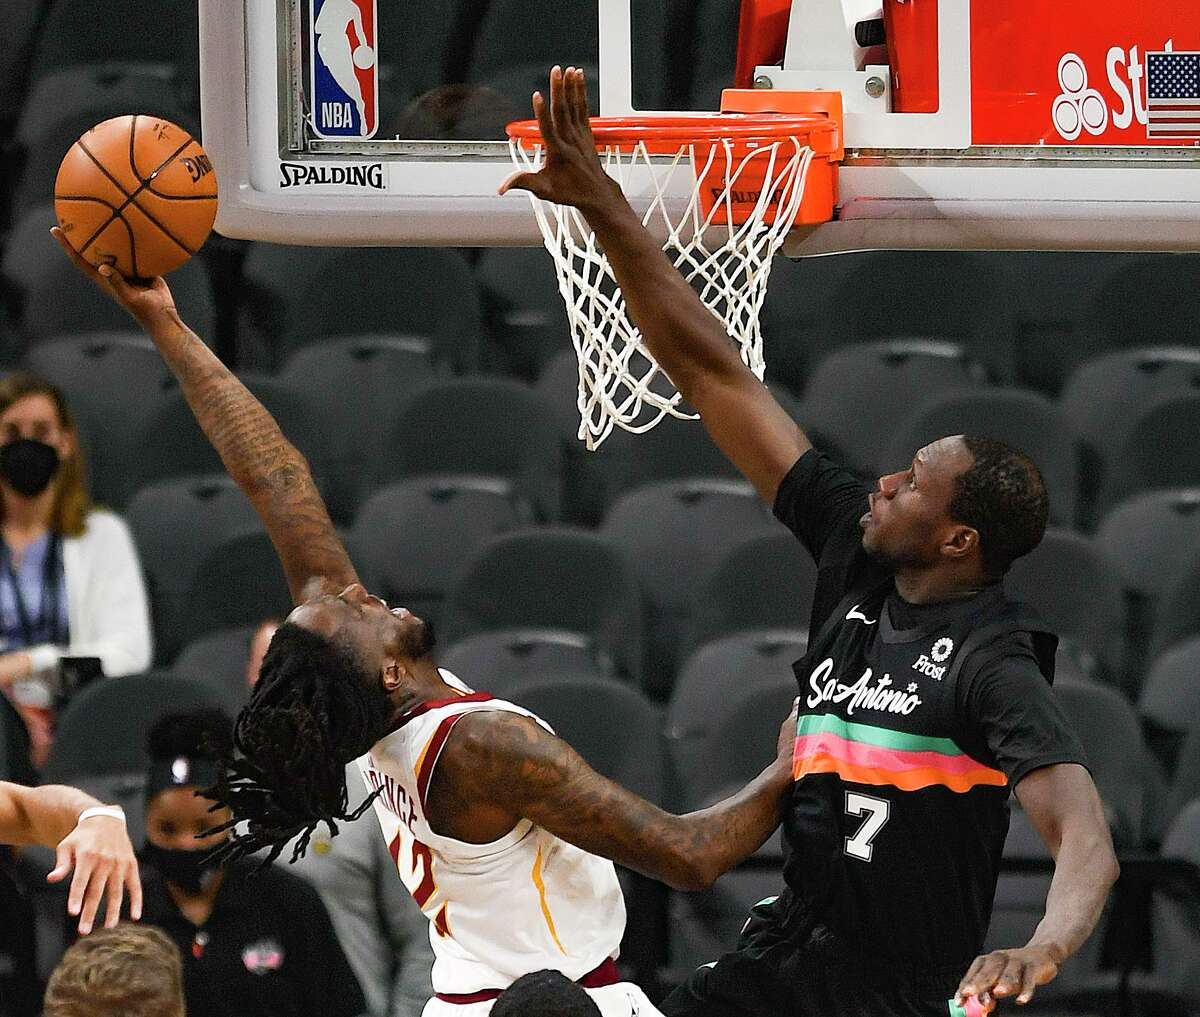 Taurean Prince of the Cleveland Cavaliers shoots as Gorgui Dieng (7) of the San Antonio Spurs defends during NBA action in the AT&T Center on Monday, April 5, 2021.